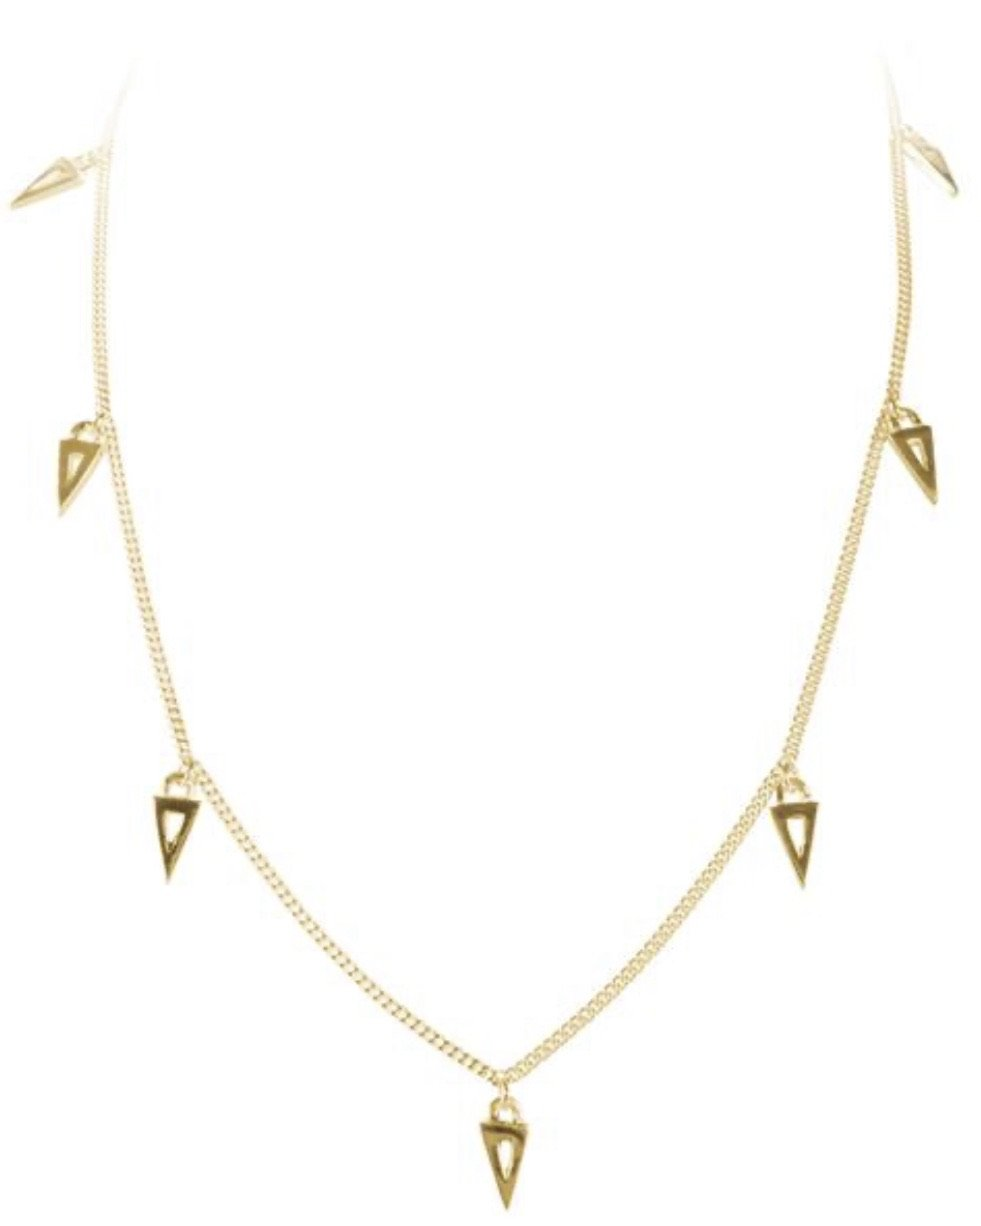 Gold Triangle Charm Necklace by Fairley